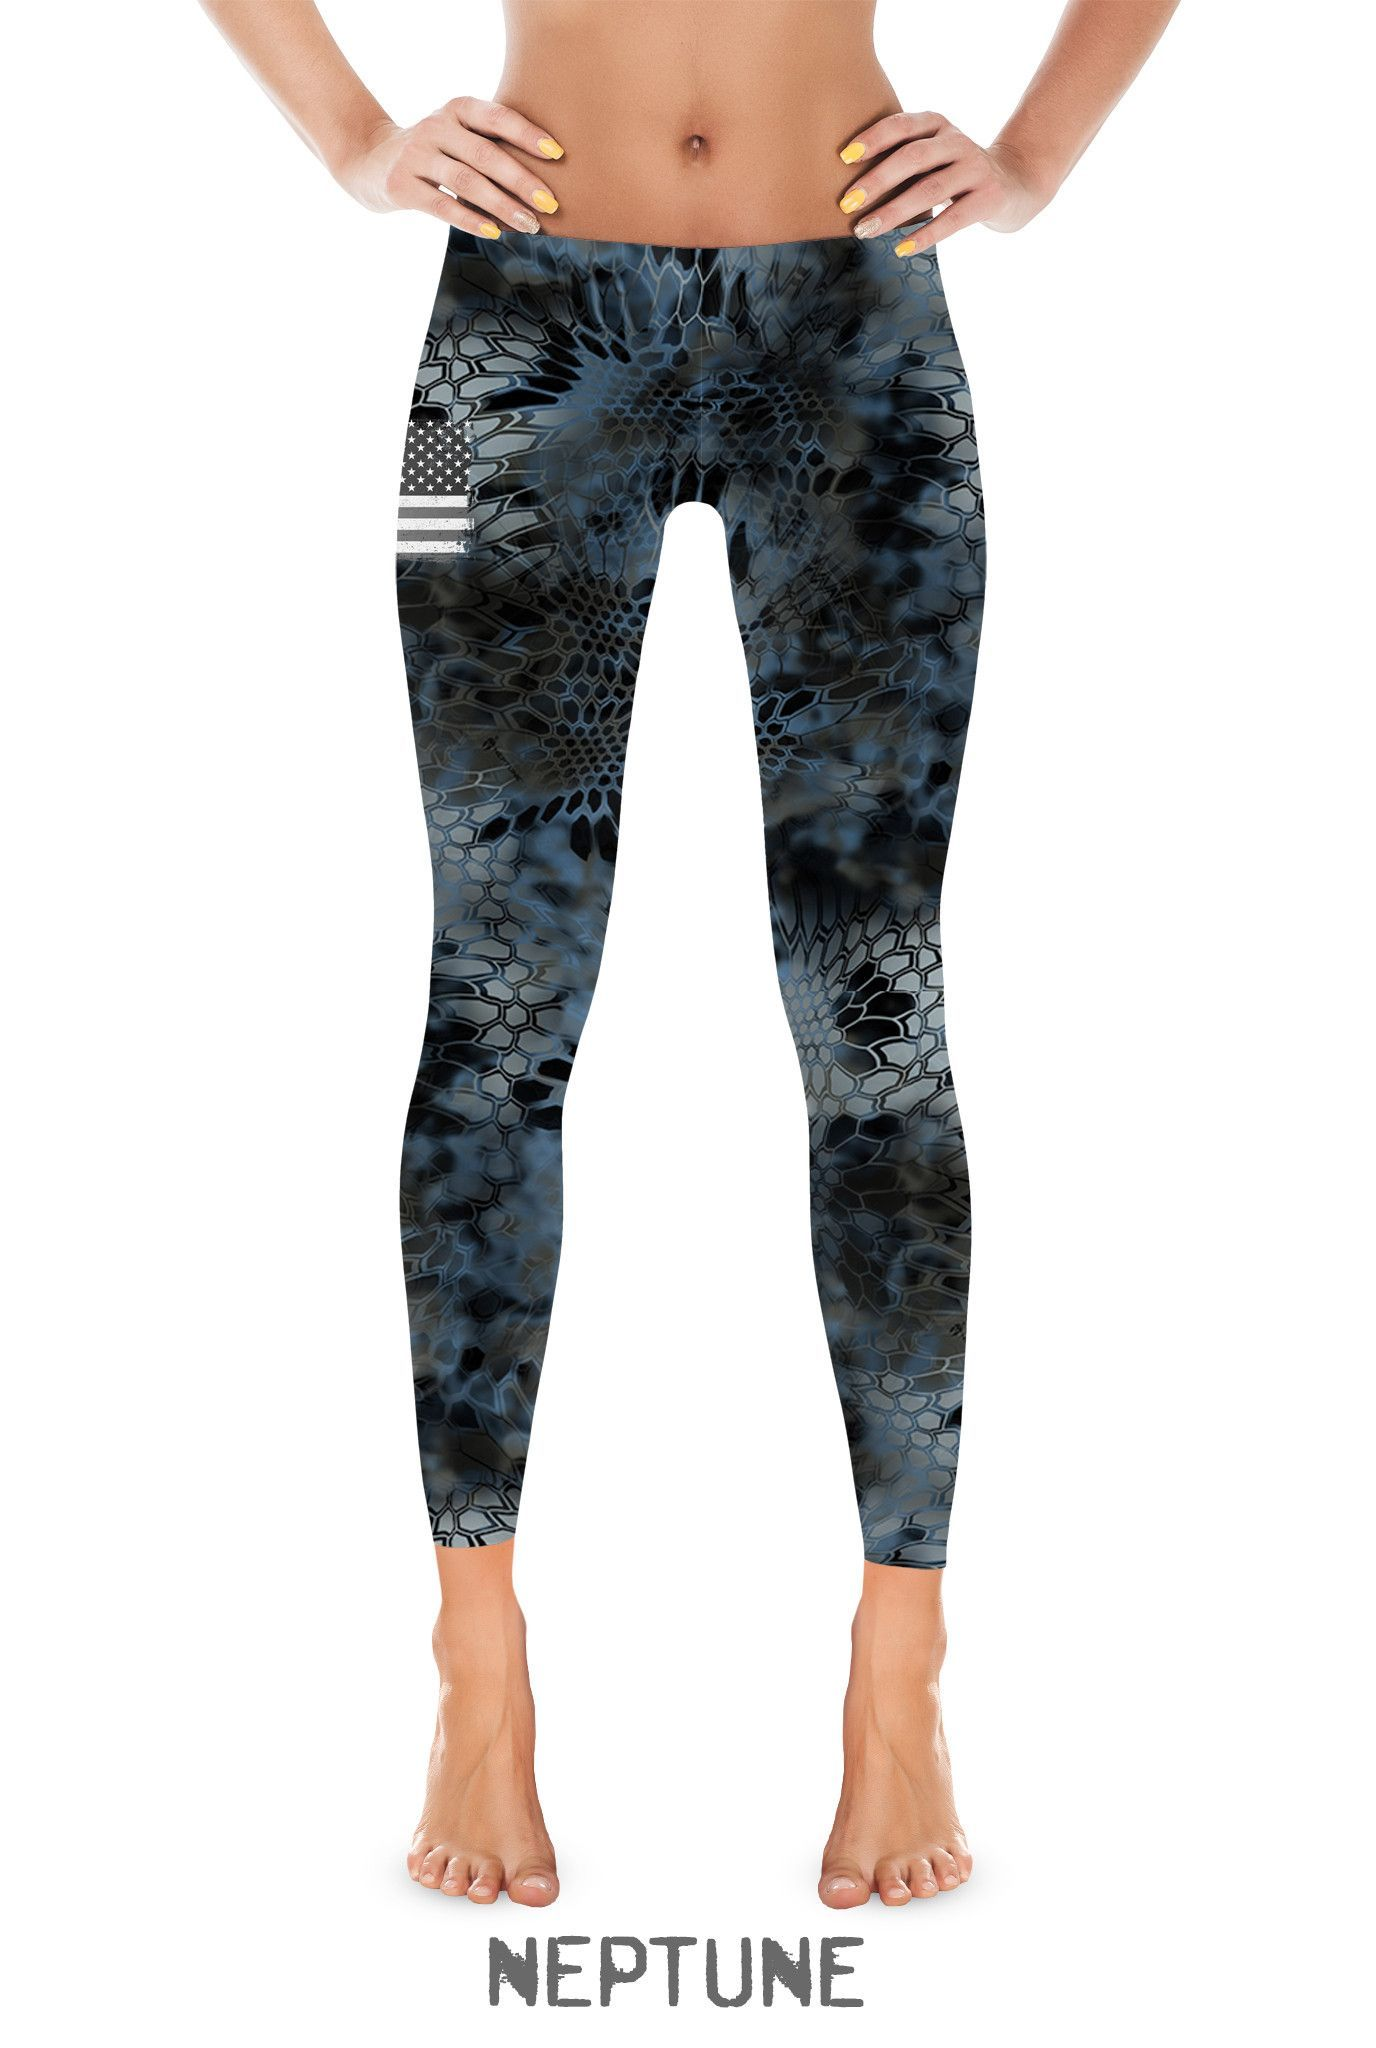 c12bb2d060d76 Womens Kryptek® Leggings Hunting Gear, Hunting Clothes, Gym Wear, Yoga Wear,